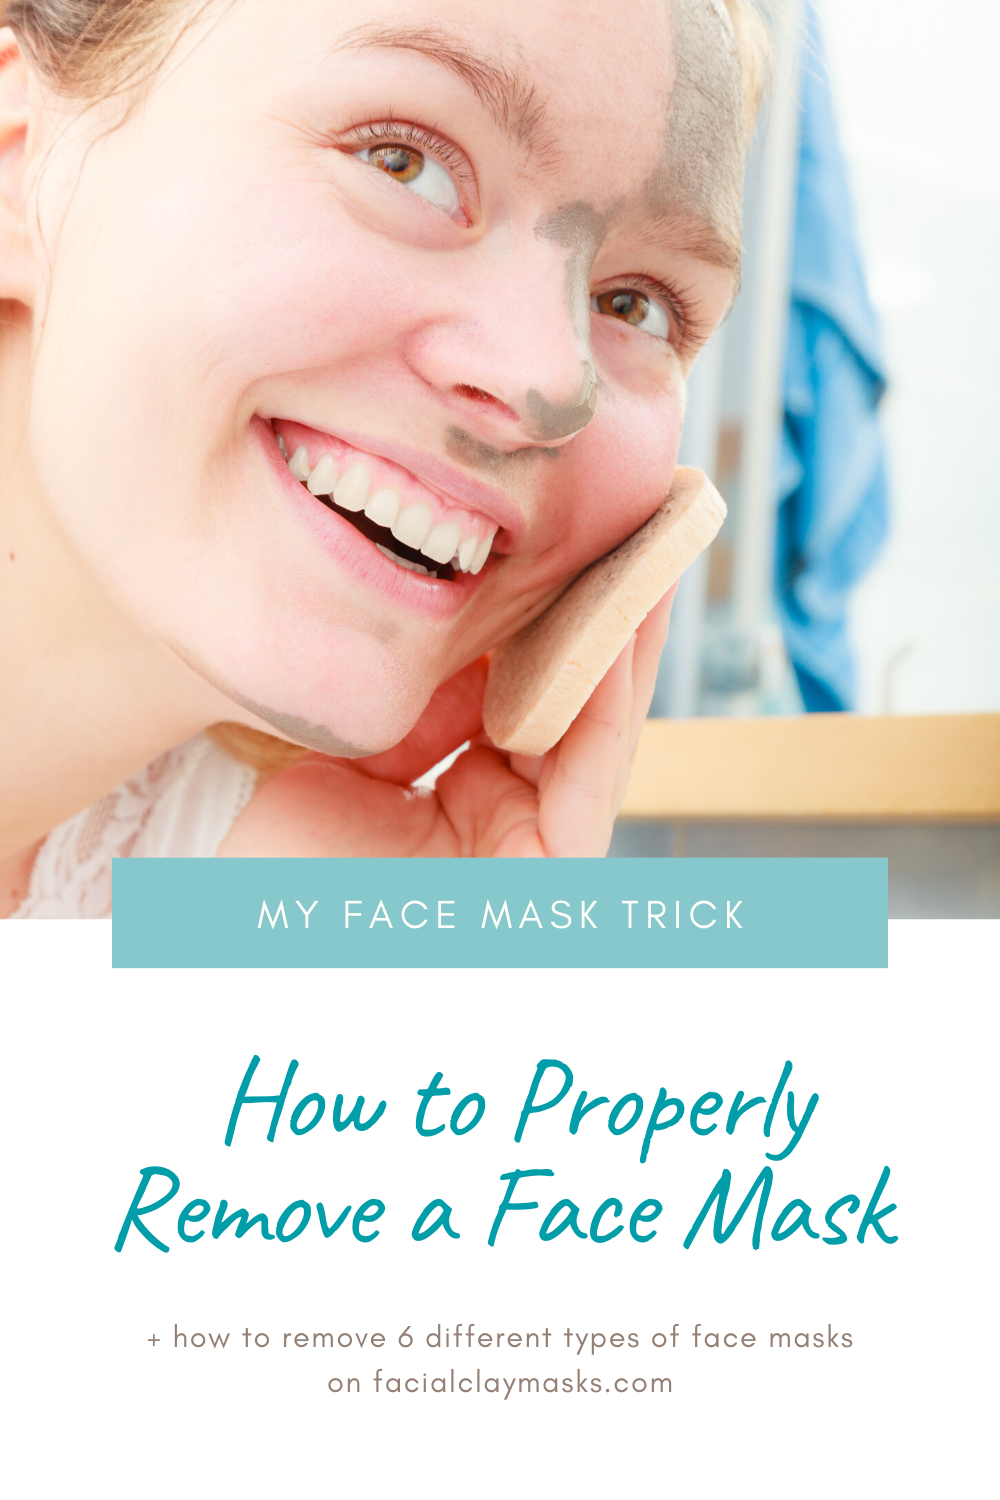 How to Remove a Face Mask 1